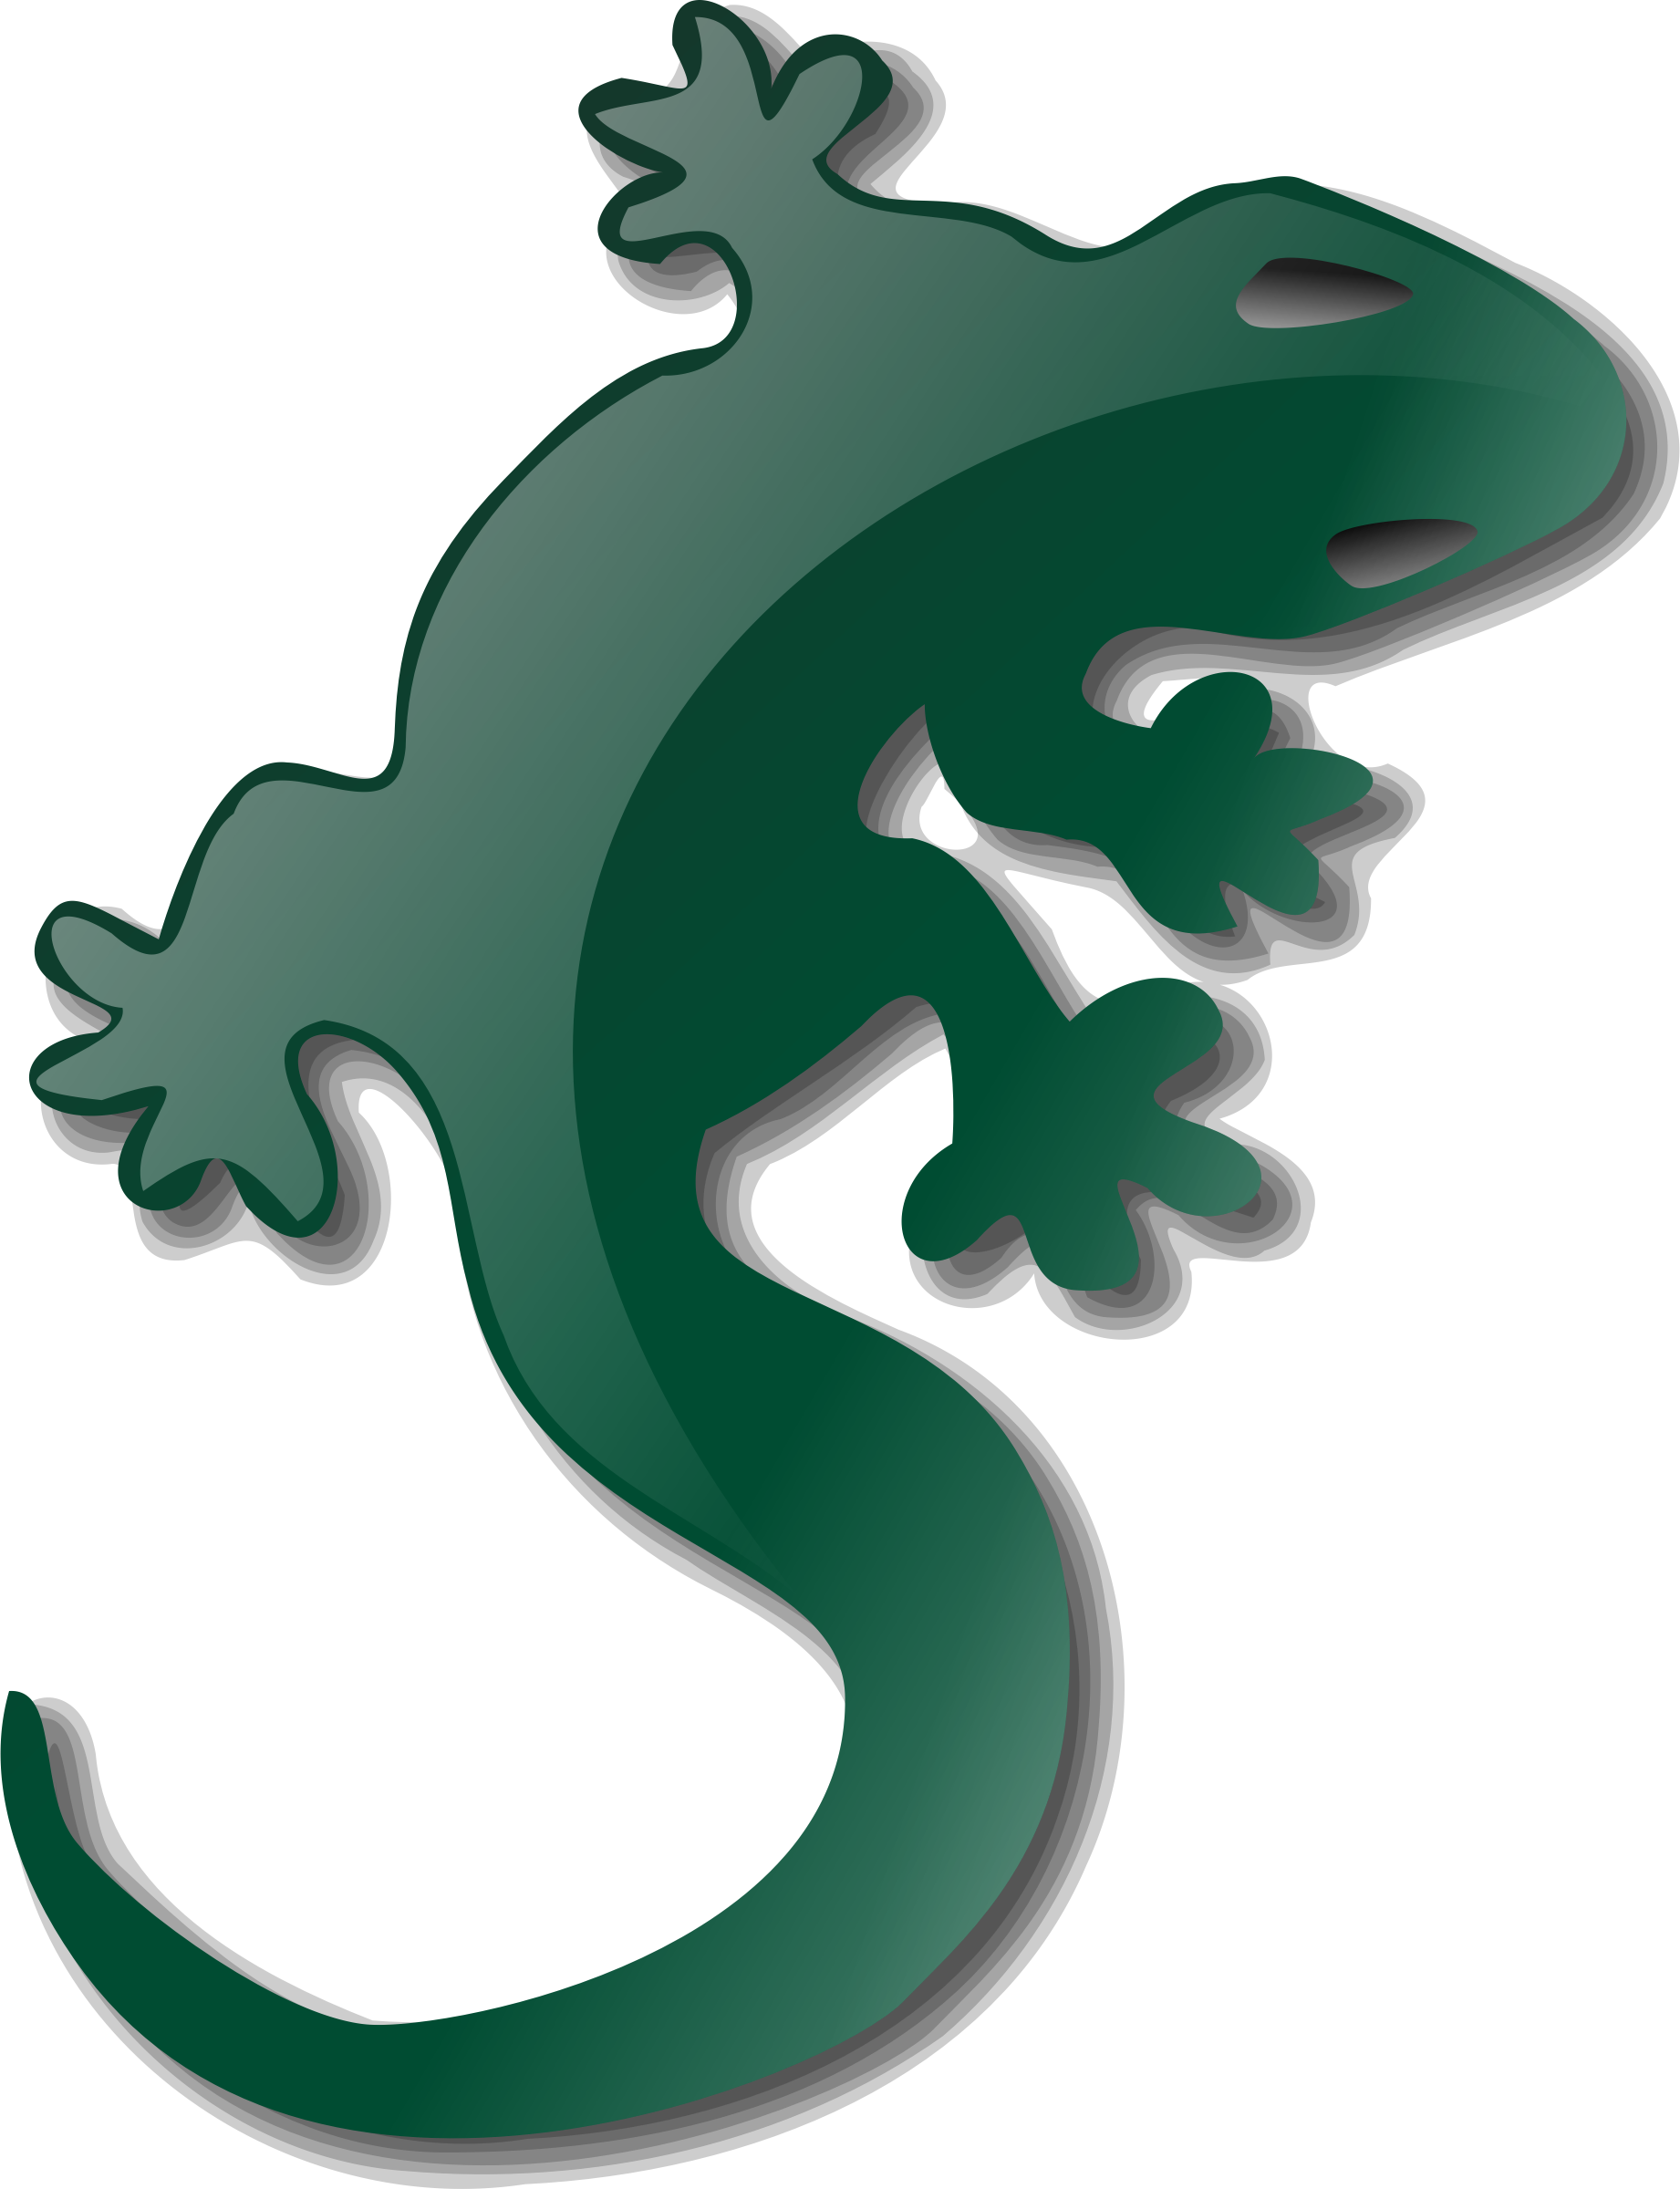 Lizard clipart green lizard. By nicubunu a on